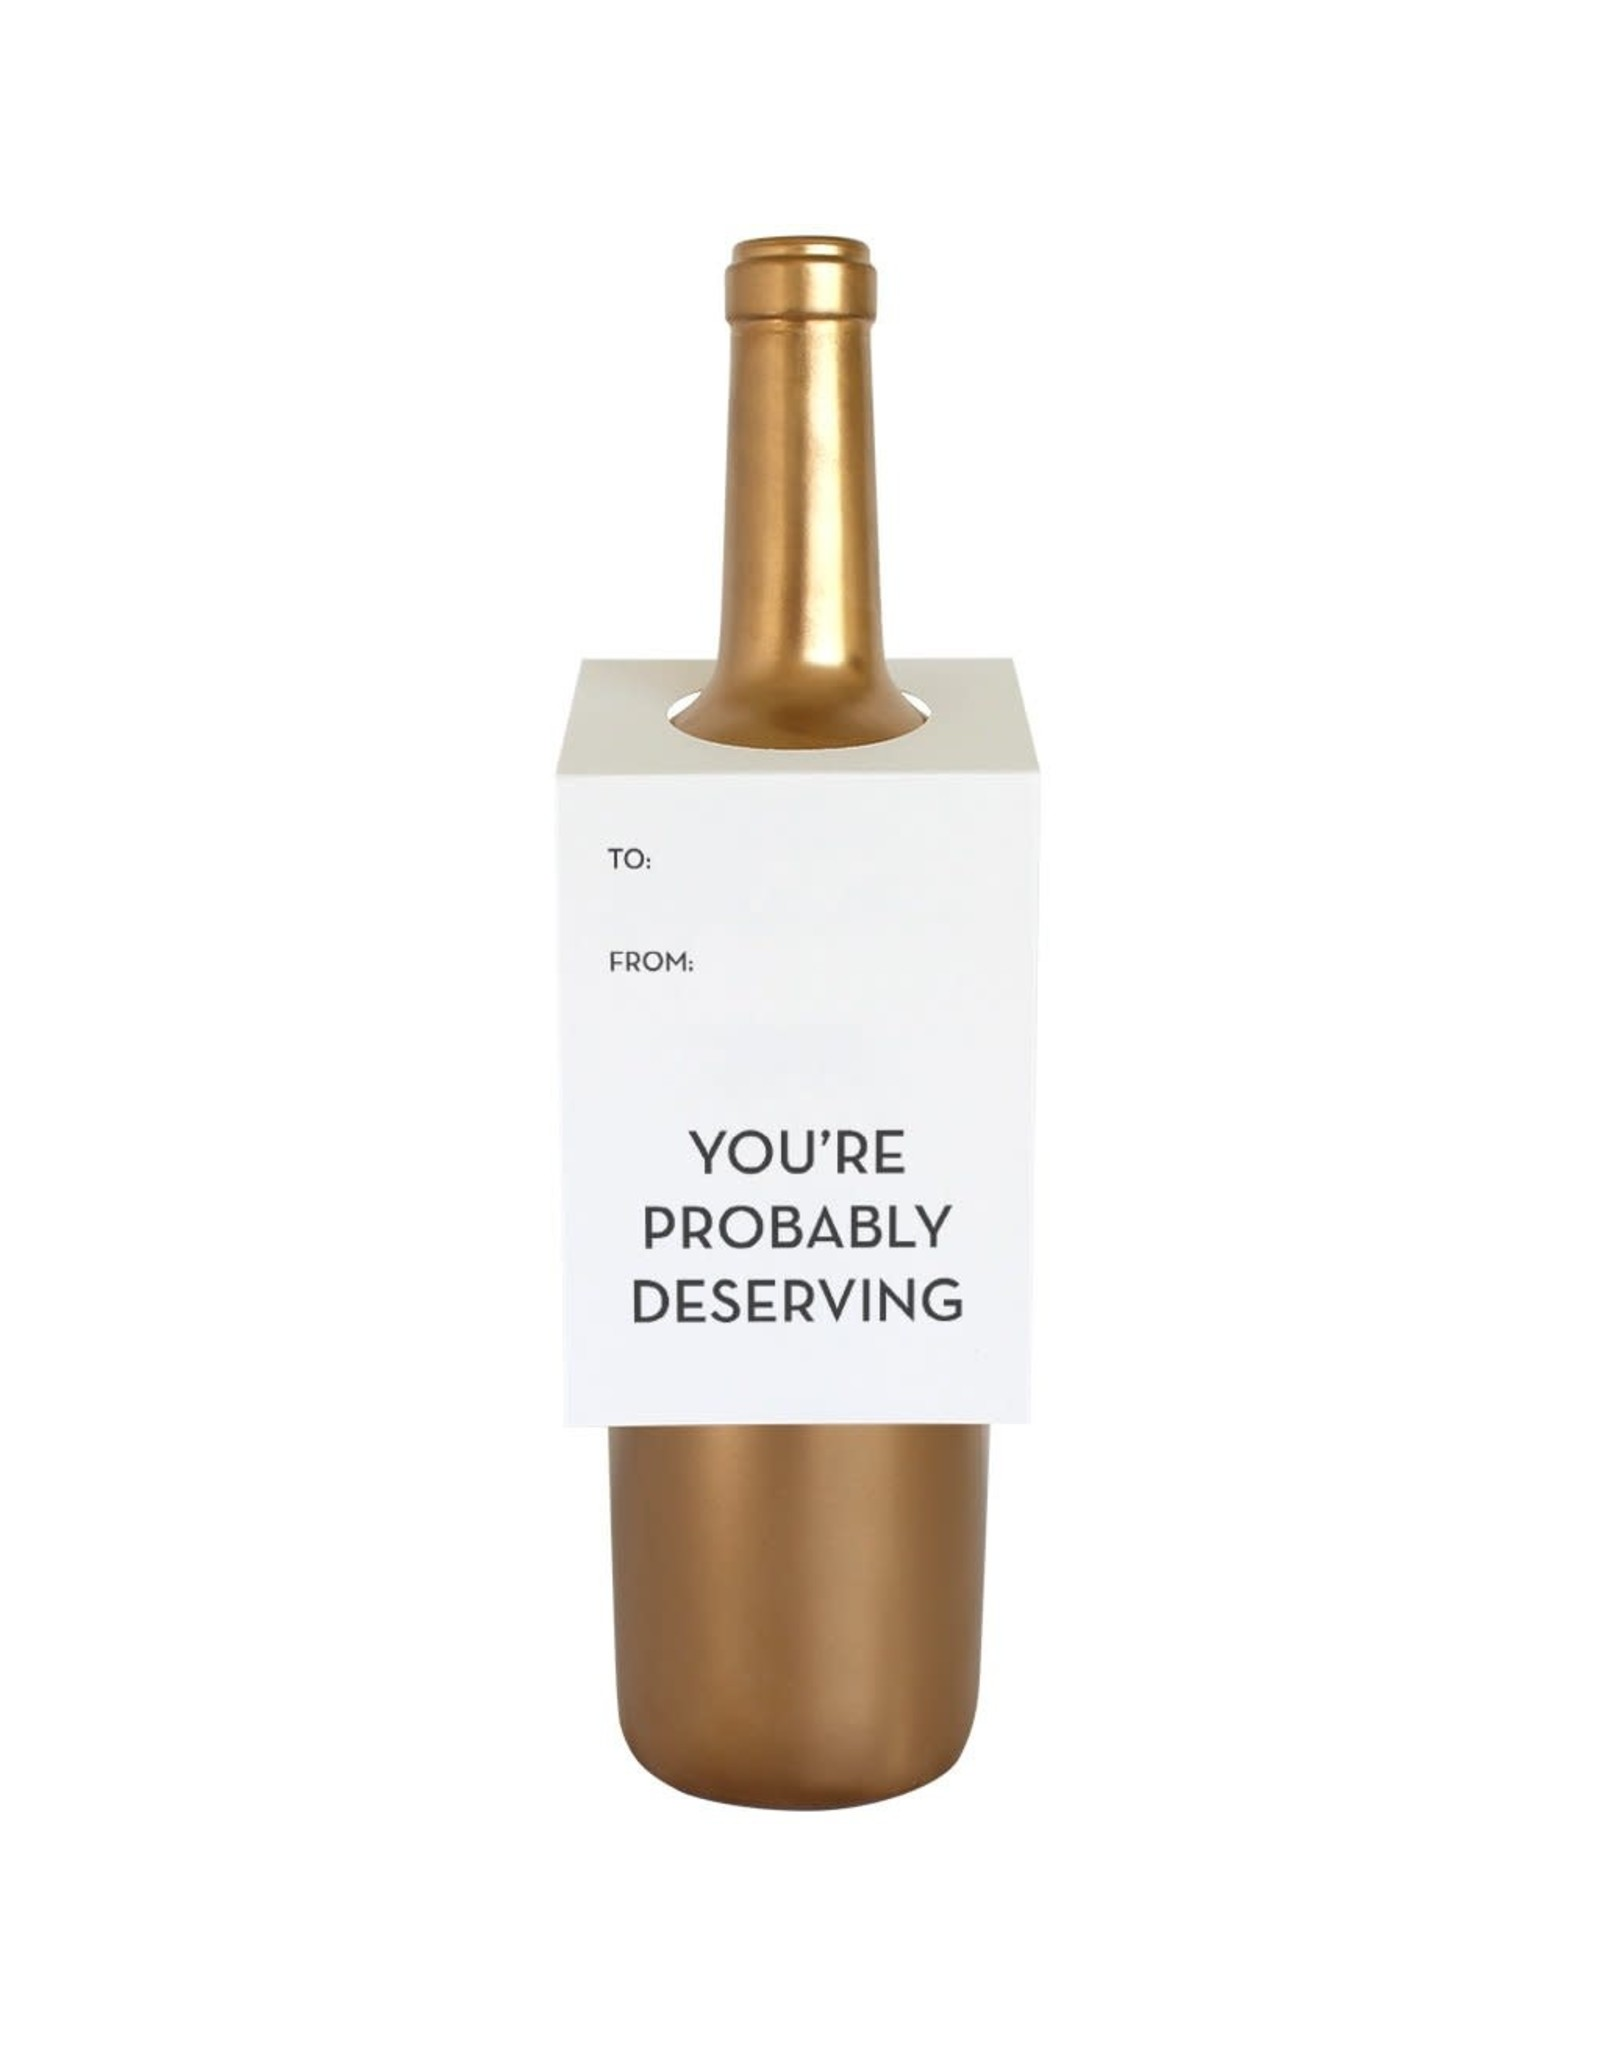 Chez Gagne You're Probably Deserving - Wine & Spirit Tag